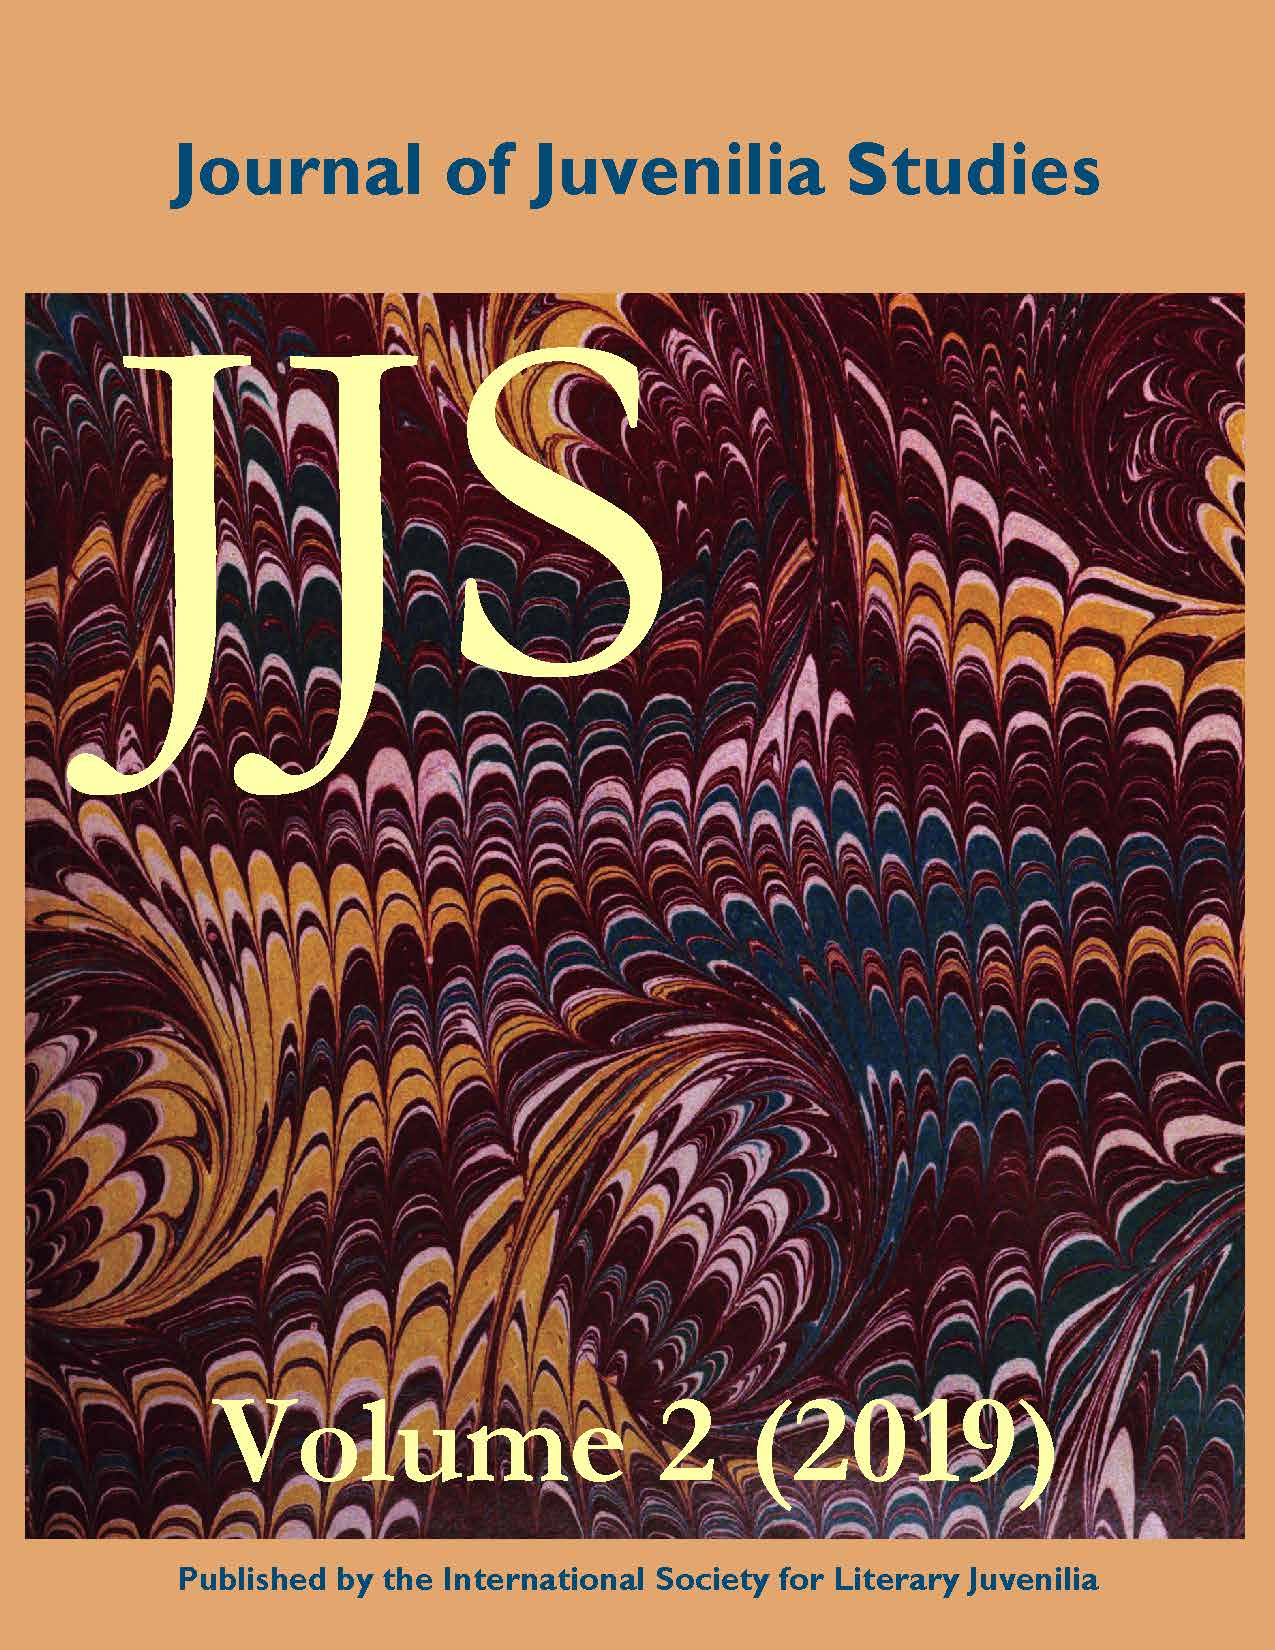 View Vol. 2 No. 2 (2019): Journal of Juvenilia Studies